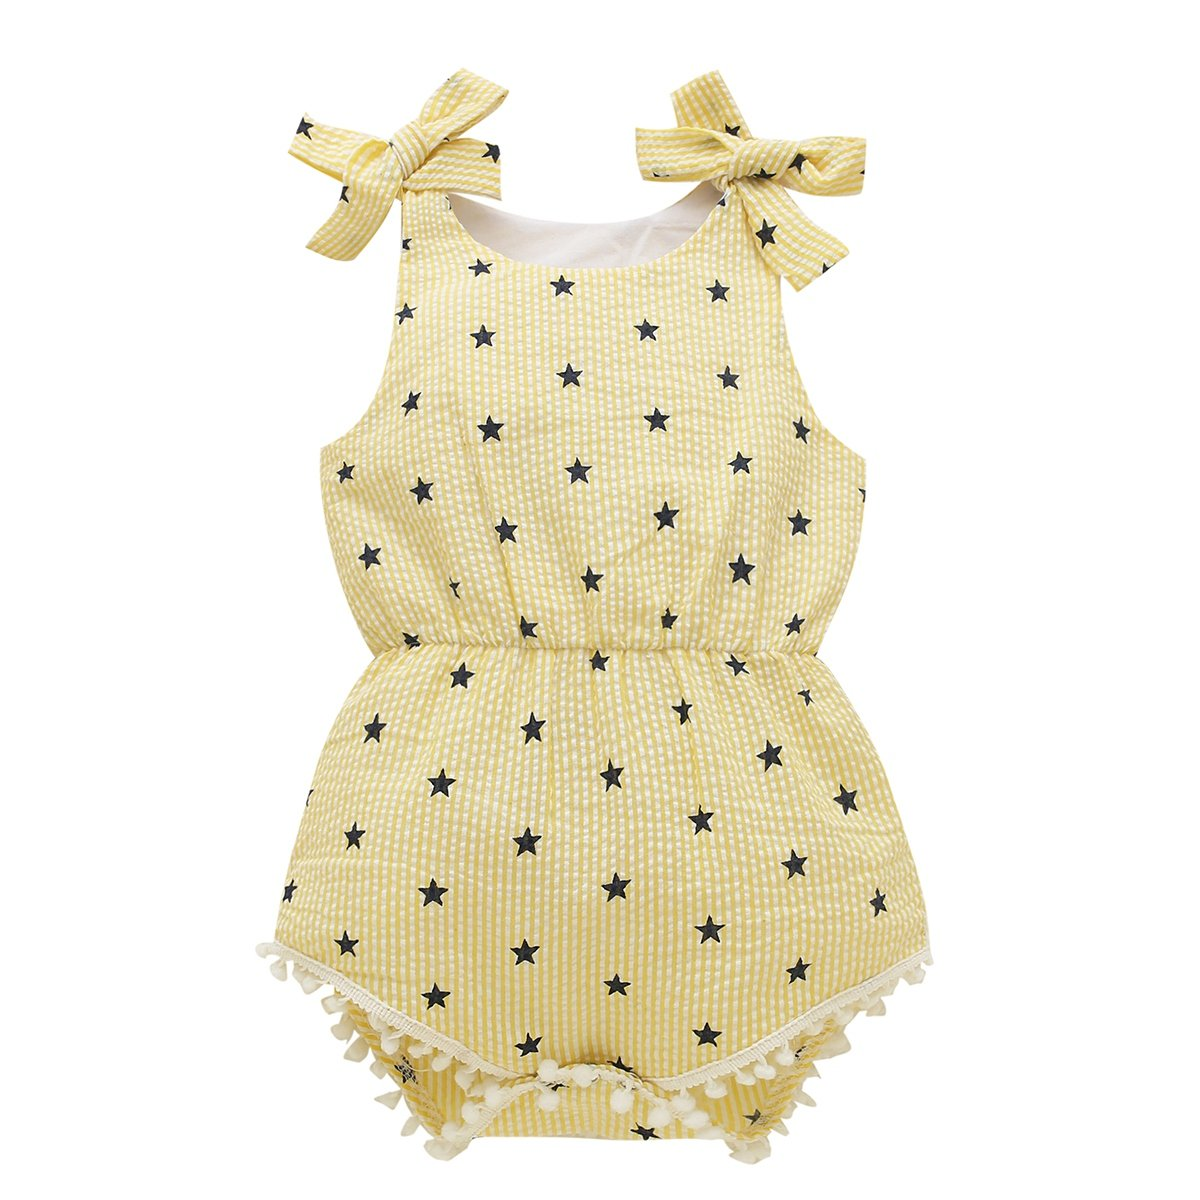 BOBORA Baby Girls Kids Cotton Clothes Sisters Matching Clothes Rompers Outfits Set BON-N-1615